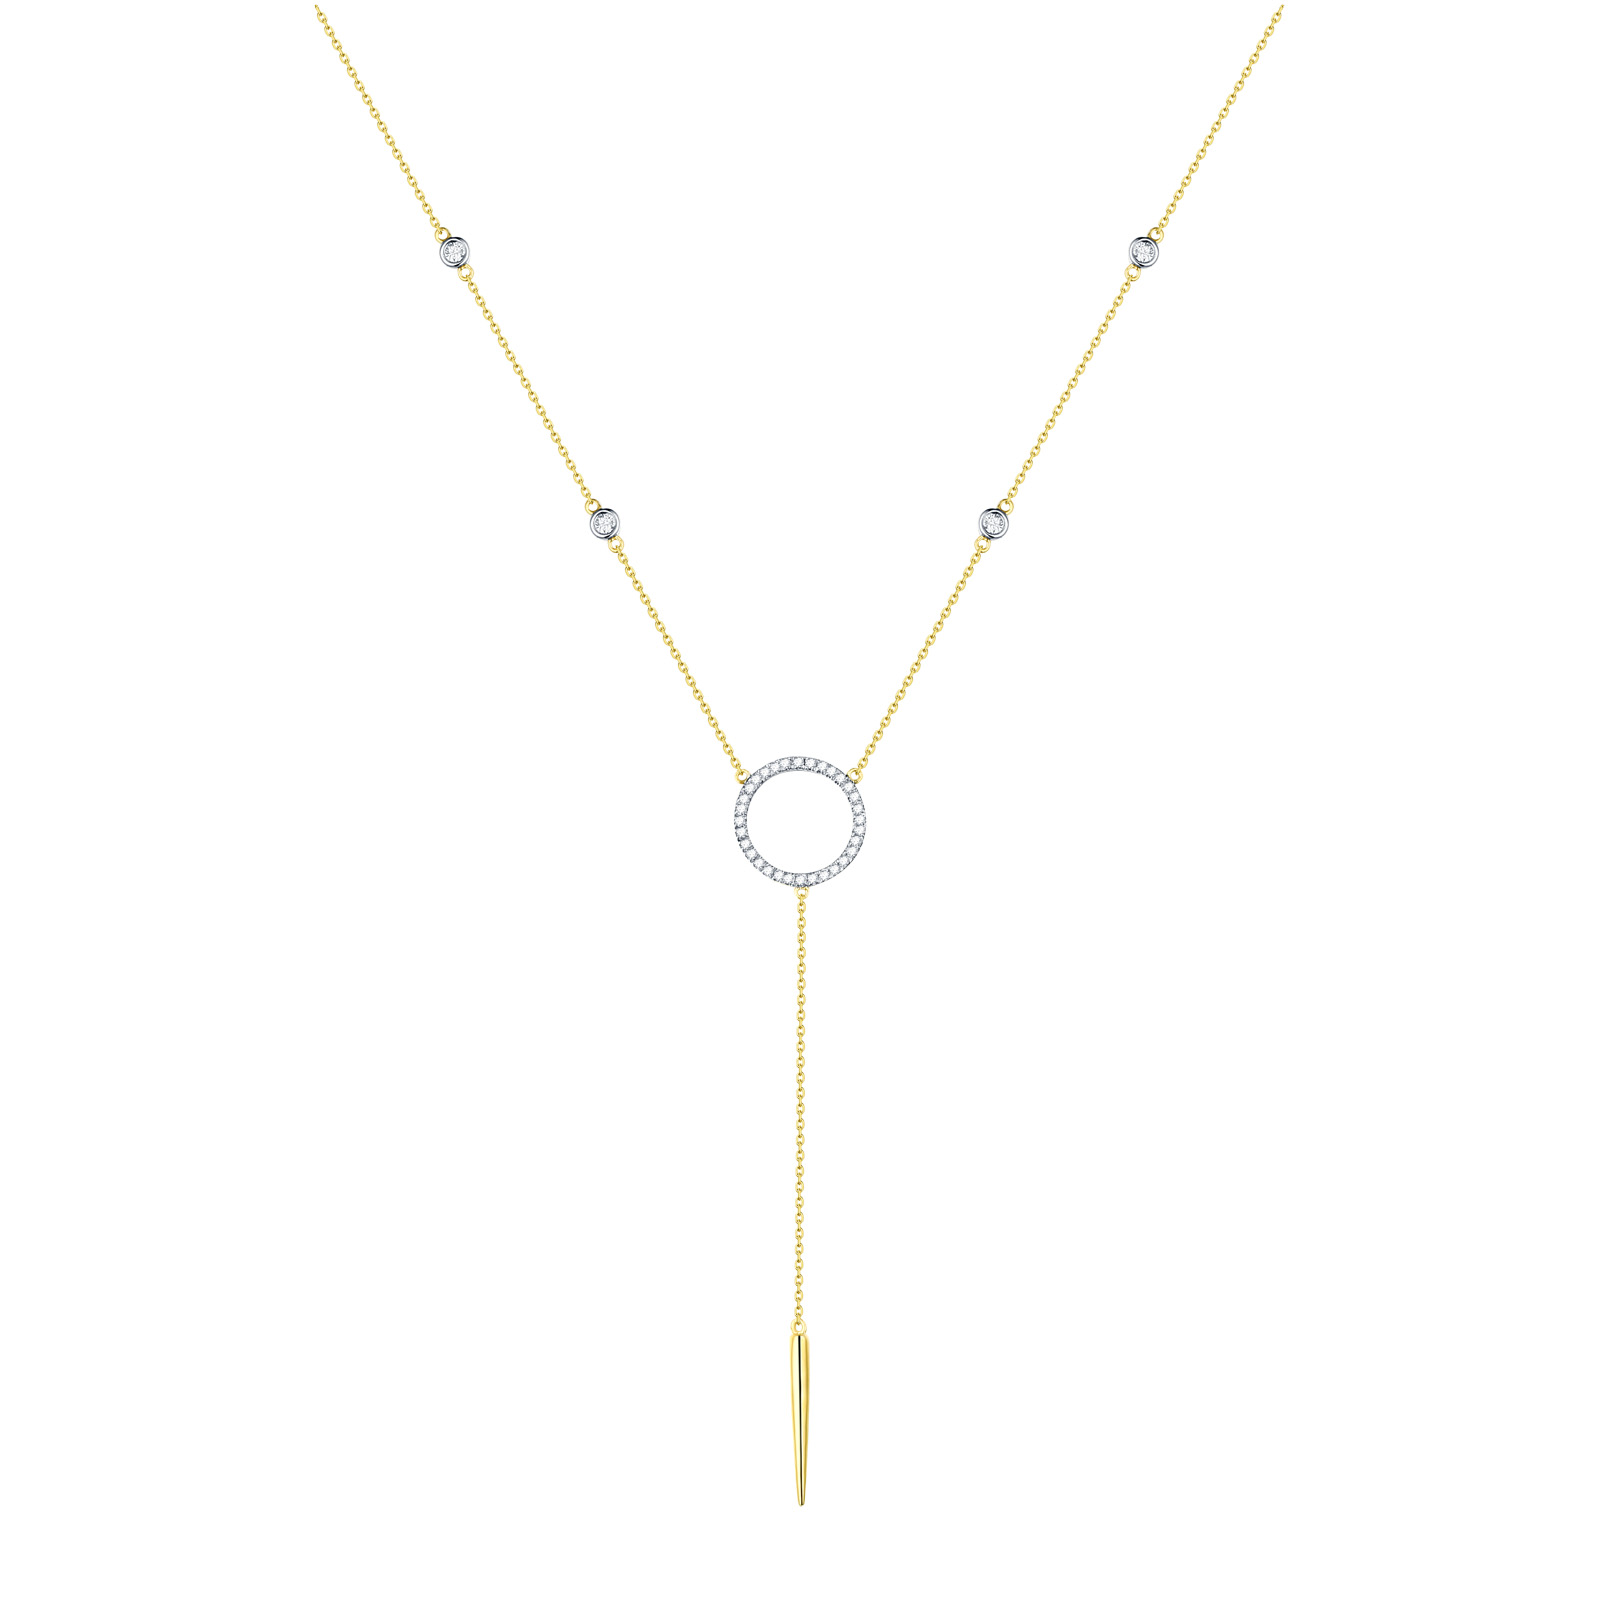 NL25996WHT- 14K Yellow Gold Diamond Necklace, 0.15 TCW